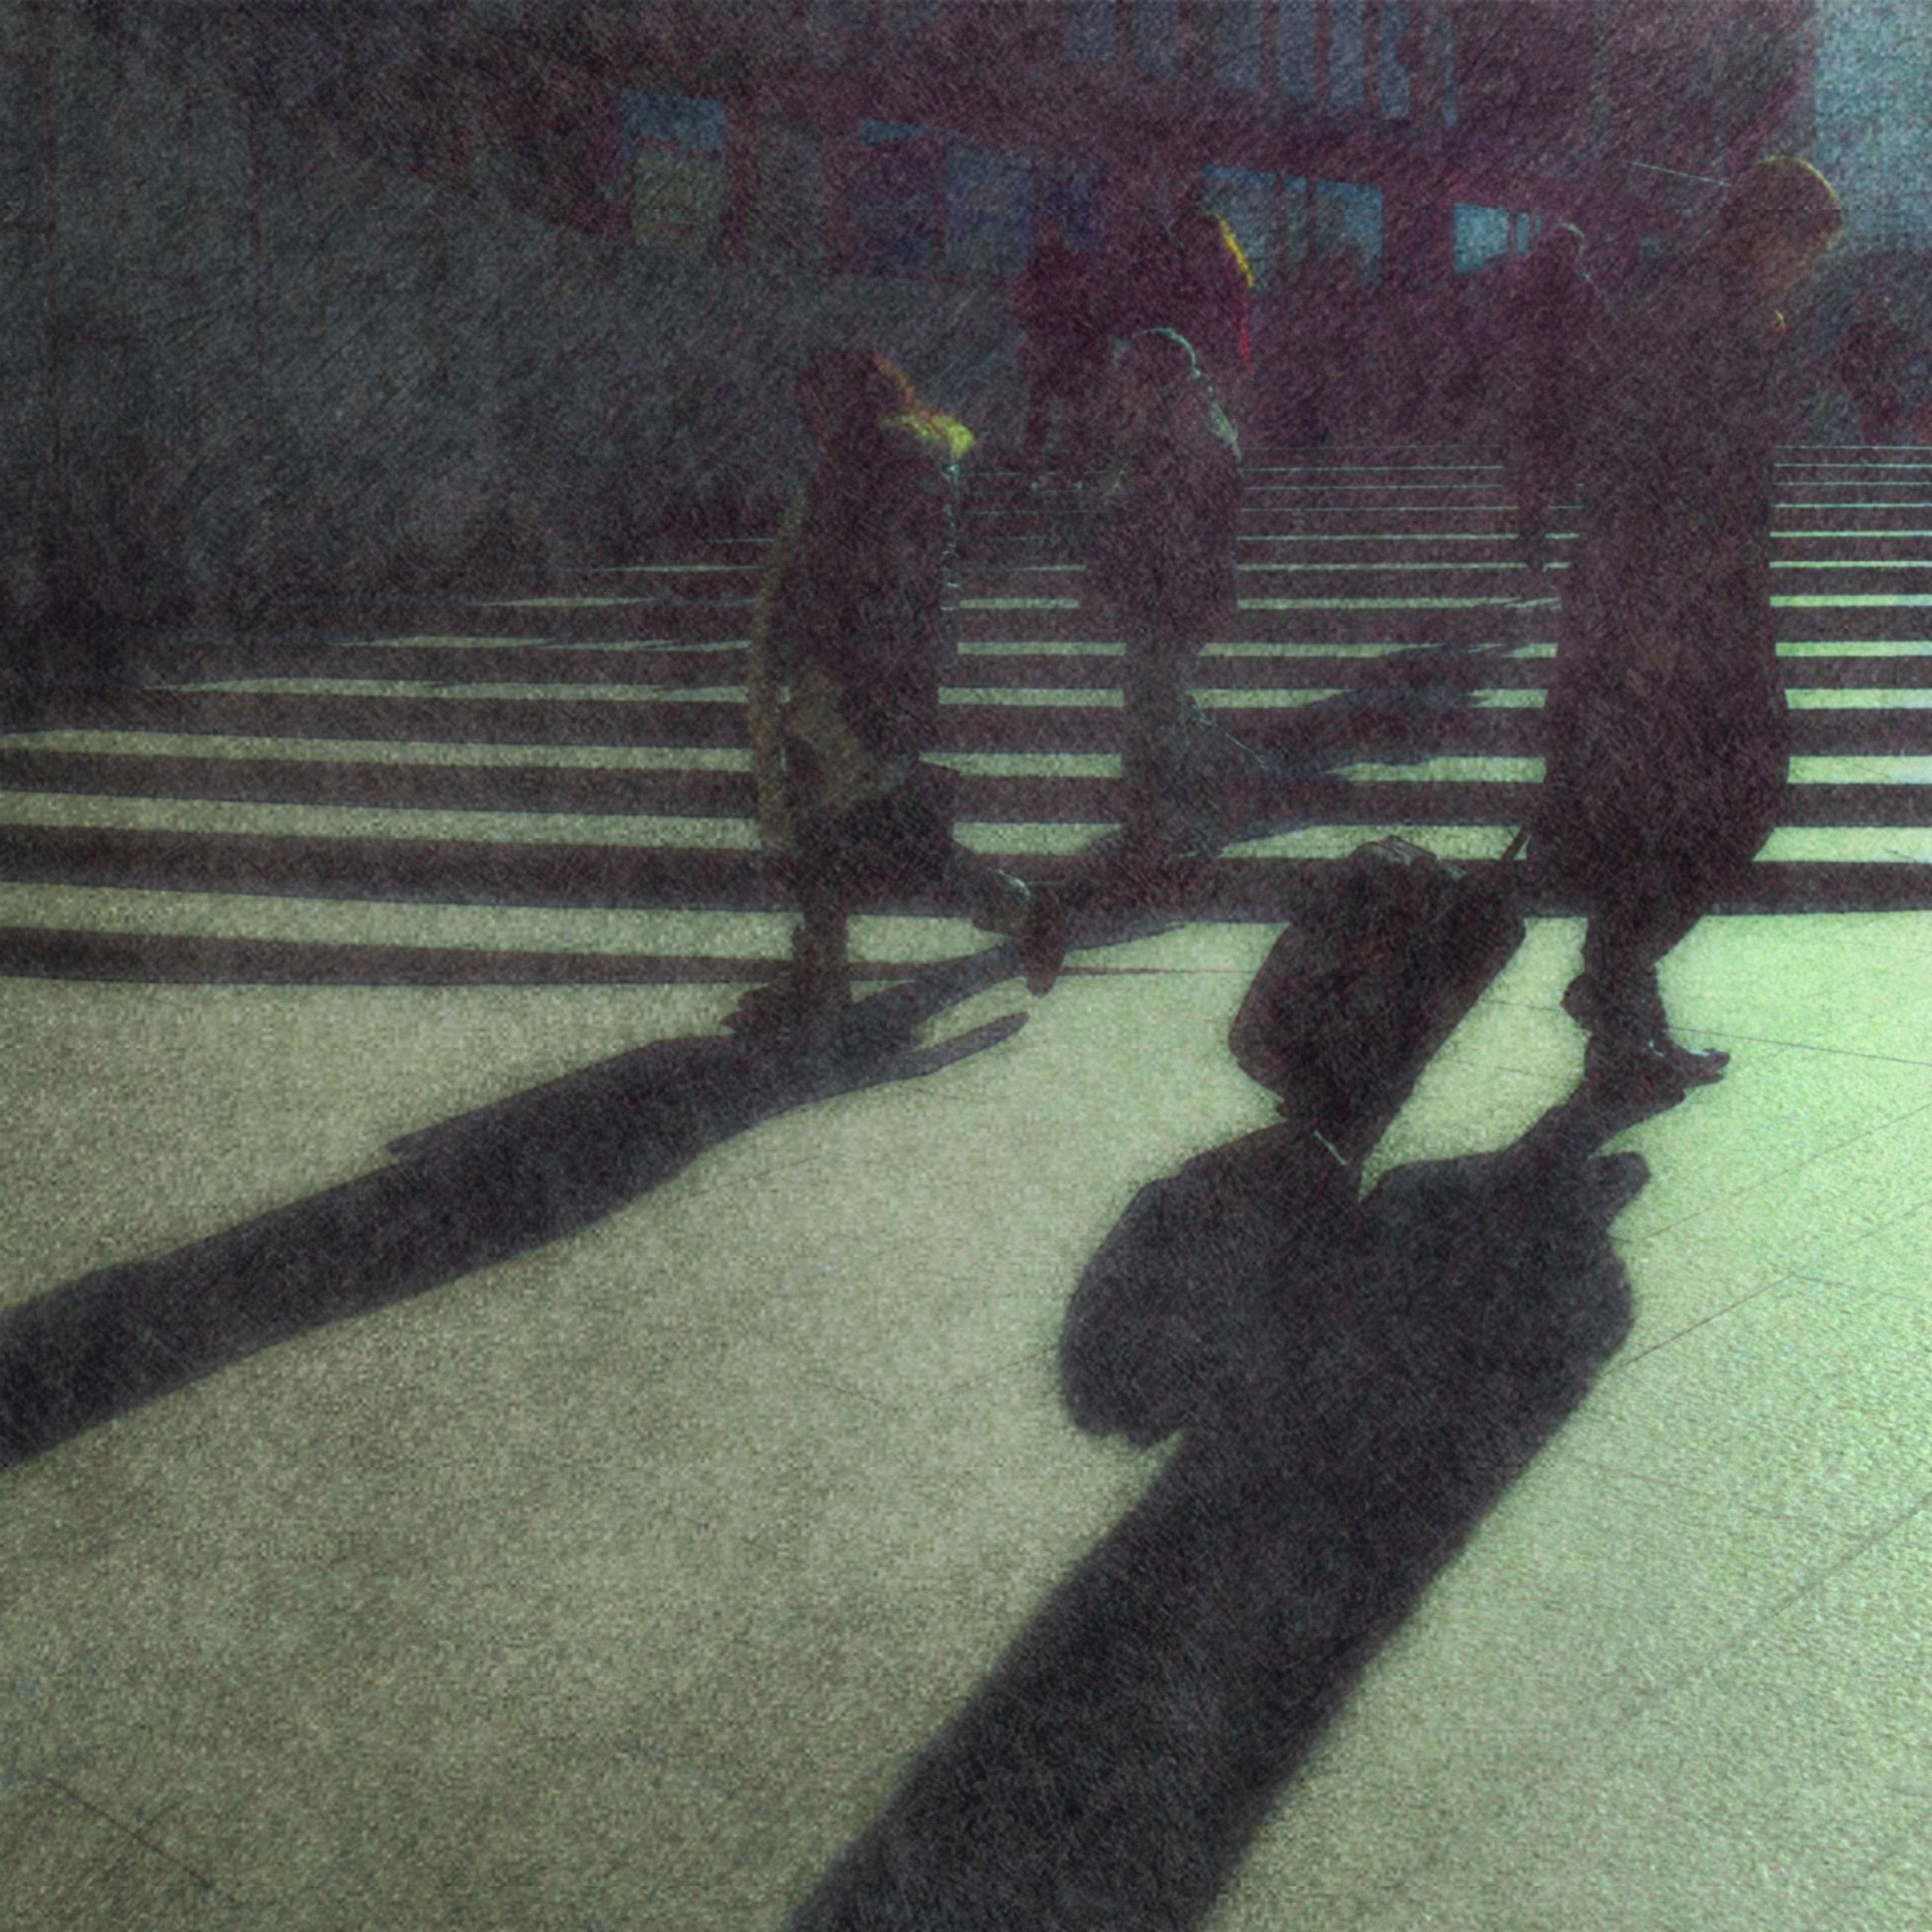 shadow, lifestyles, focus on shadow, men, silhouette, leisure activity, high angle view, sunlight, walking, person, unrecognizable person, street, togetherness, outline, standing, outdoors, night